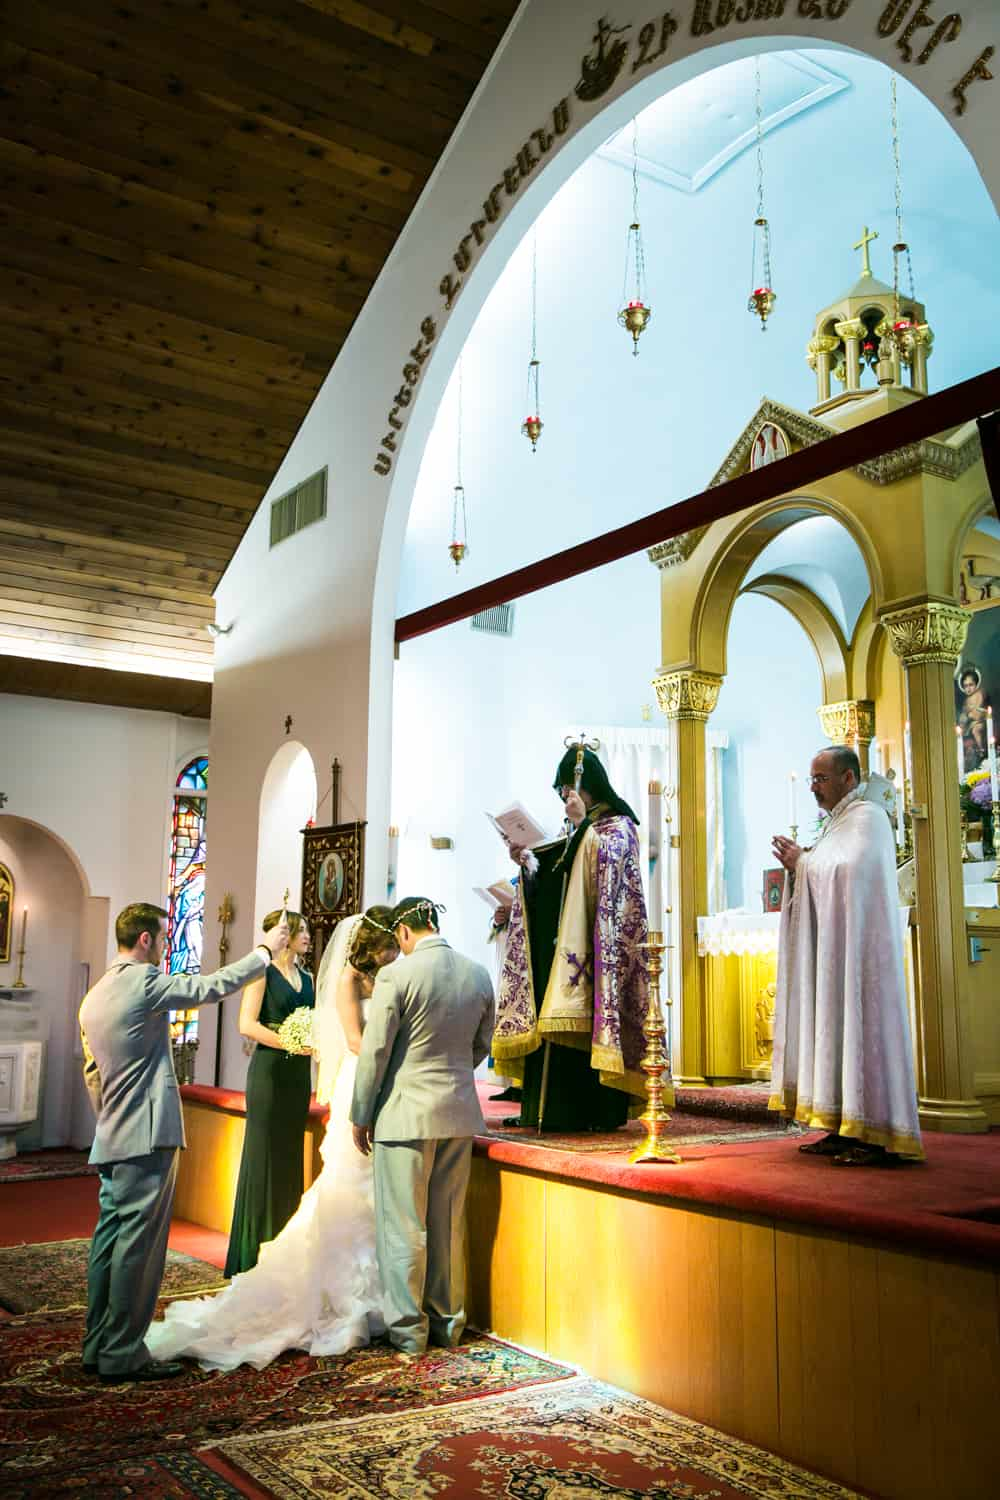 Bride and groom being blessed in Eastern Orthodox wedding ceremony